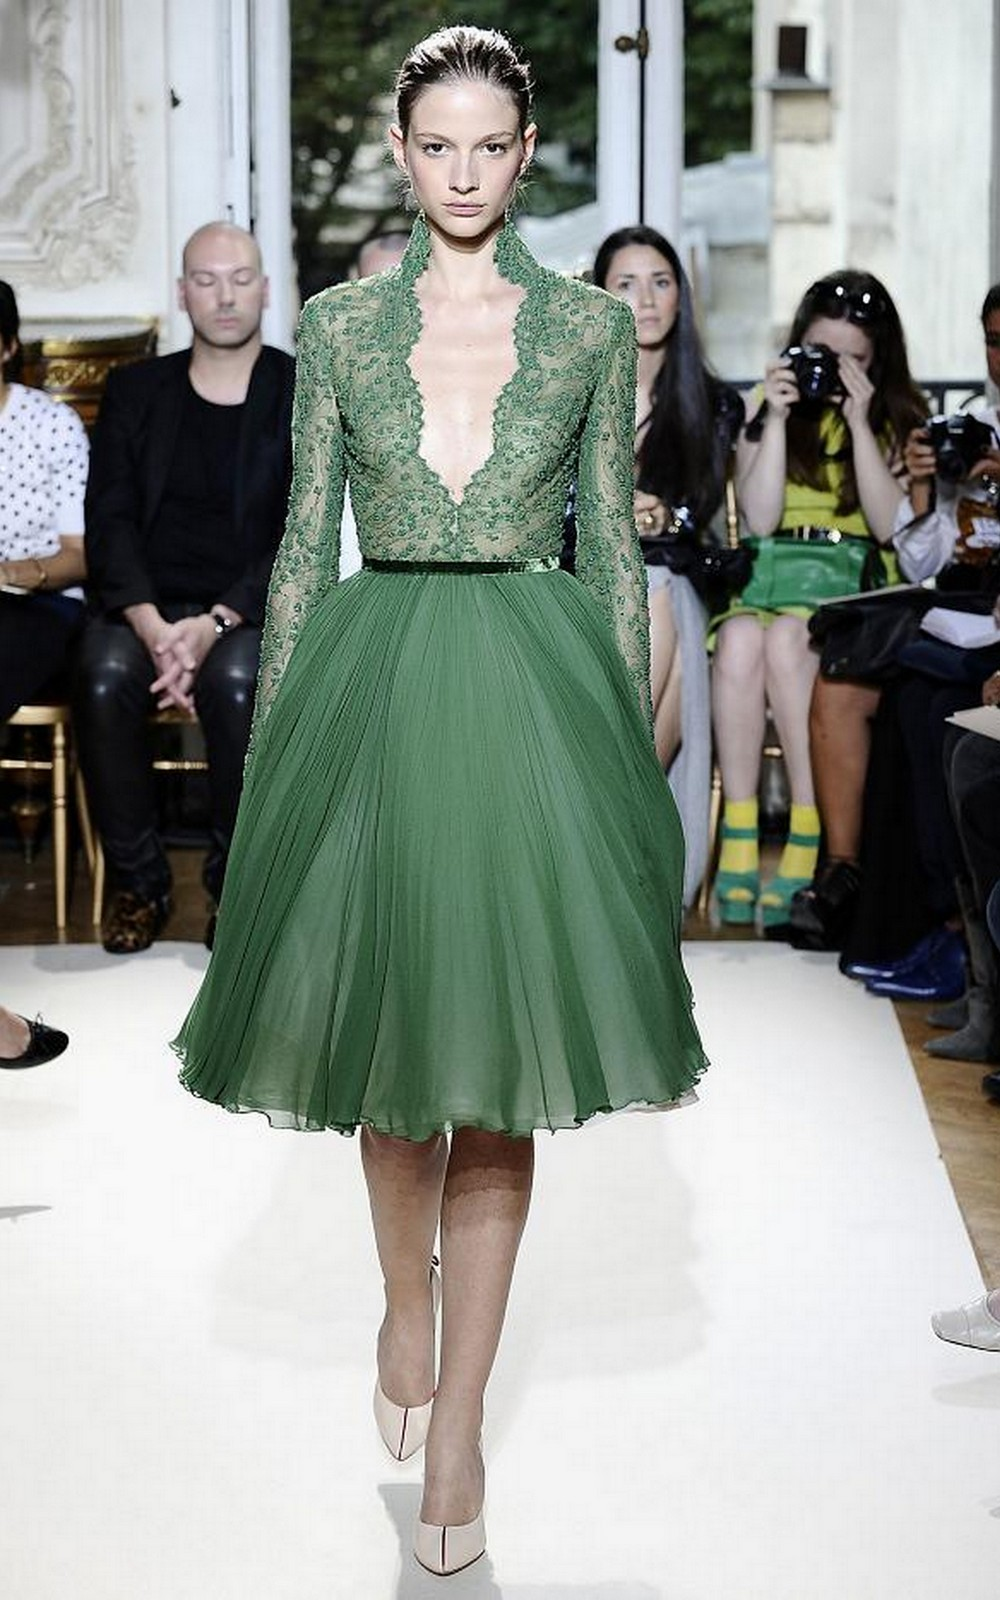 Glamorous Green Christmas Dress :: House of Valentina